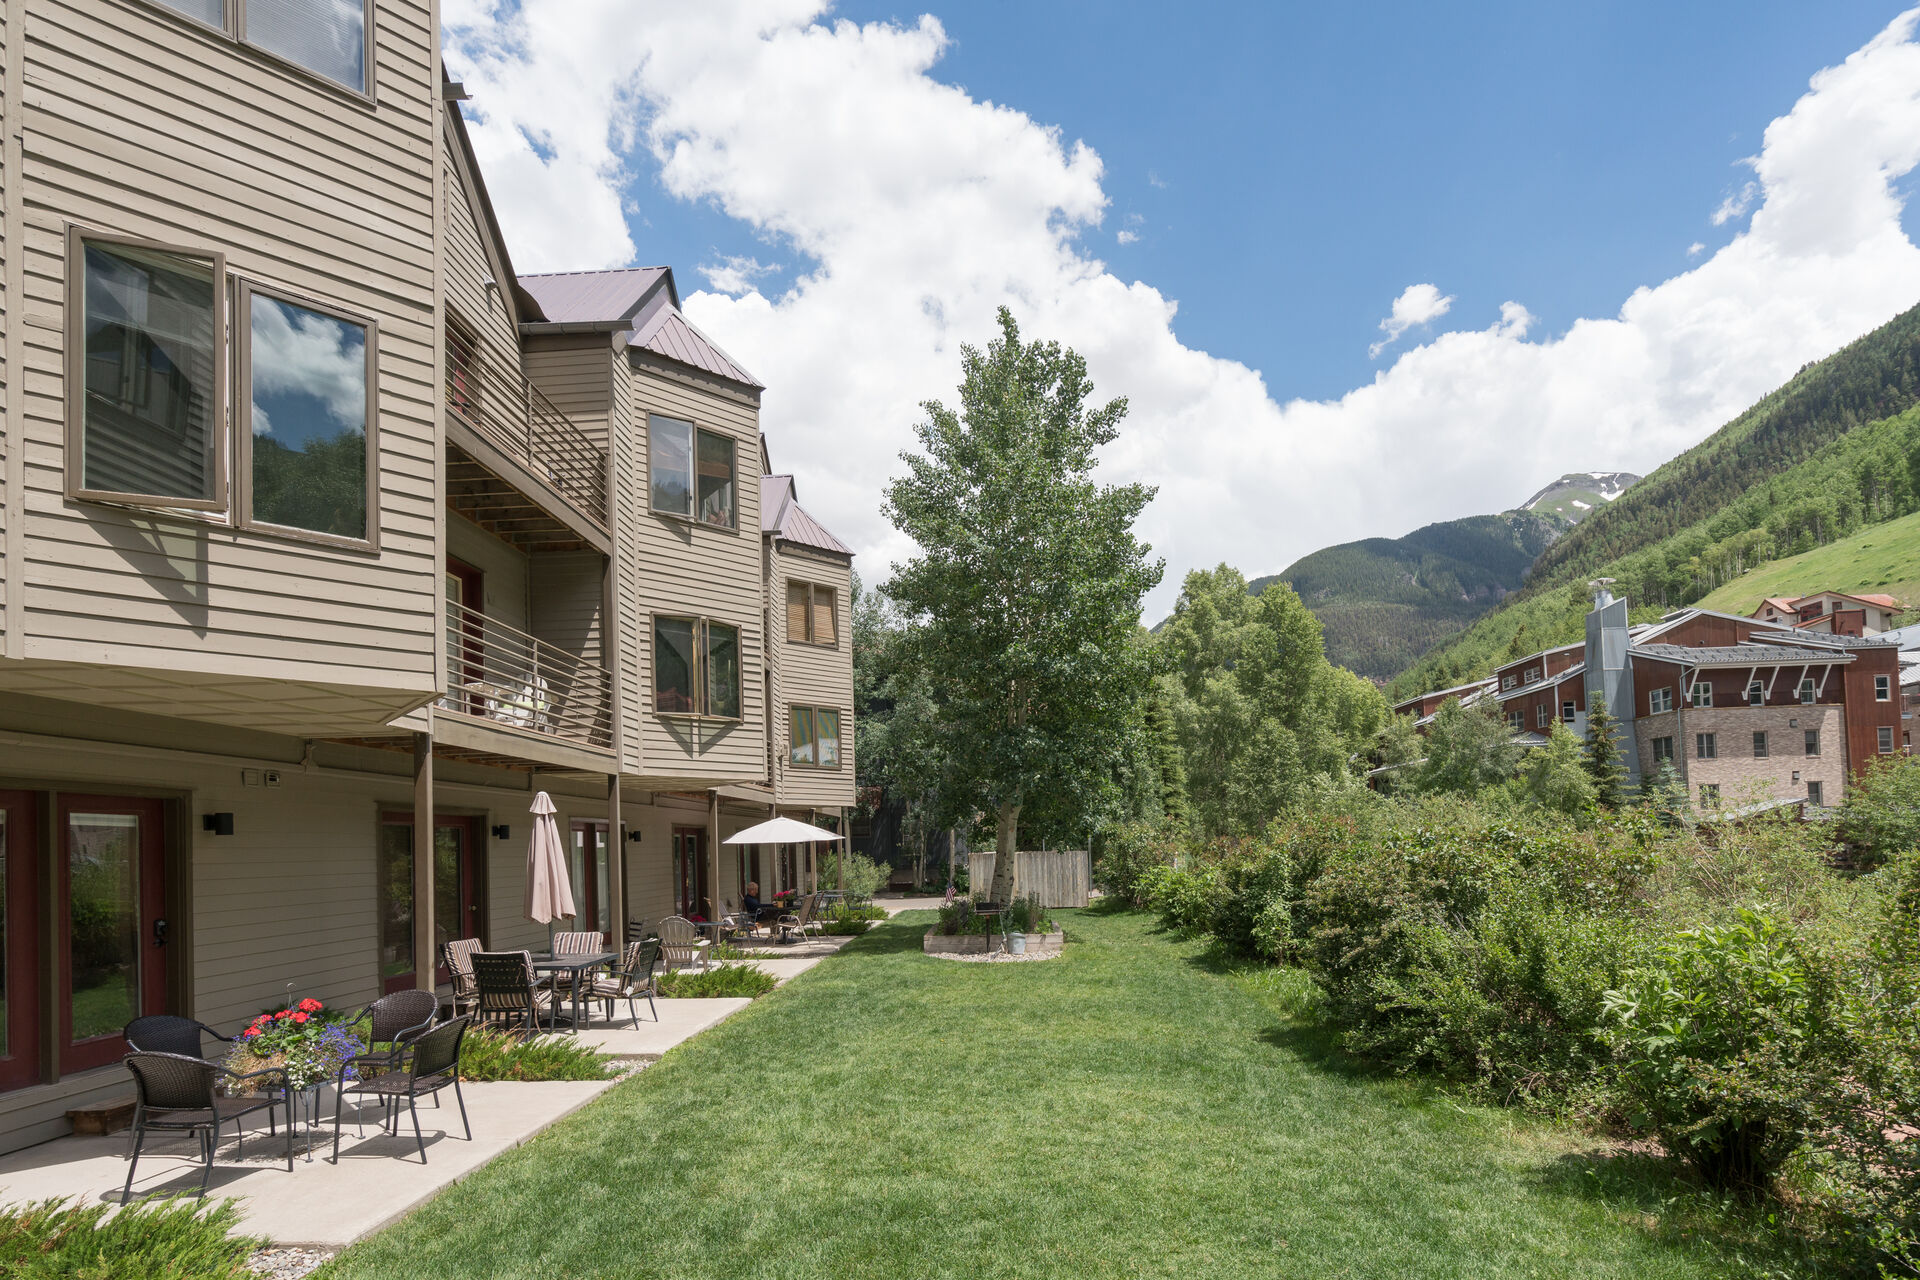 Outside view from our Telluride studio rental